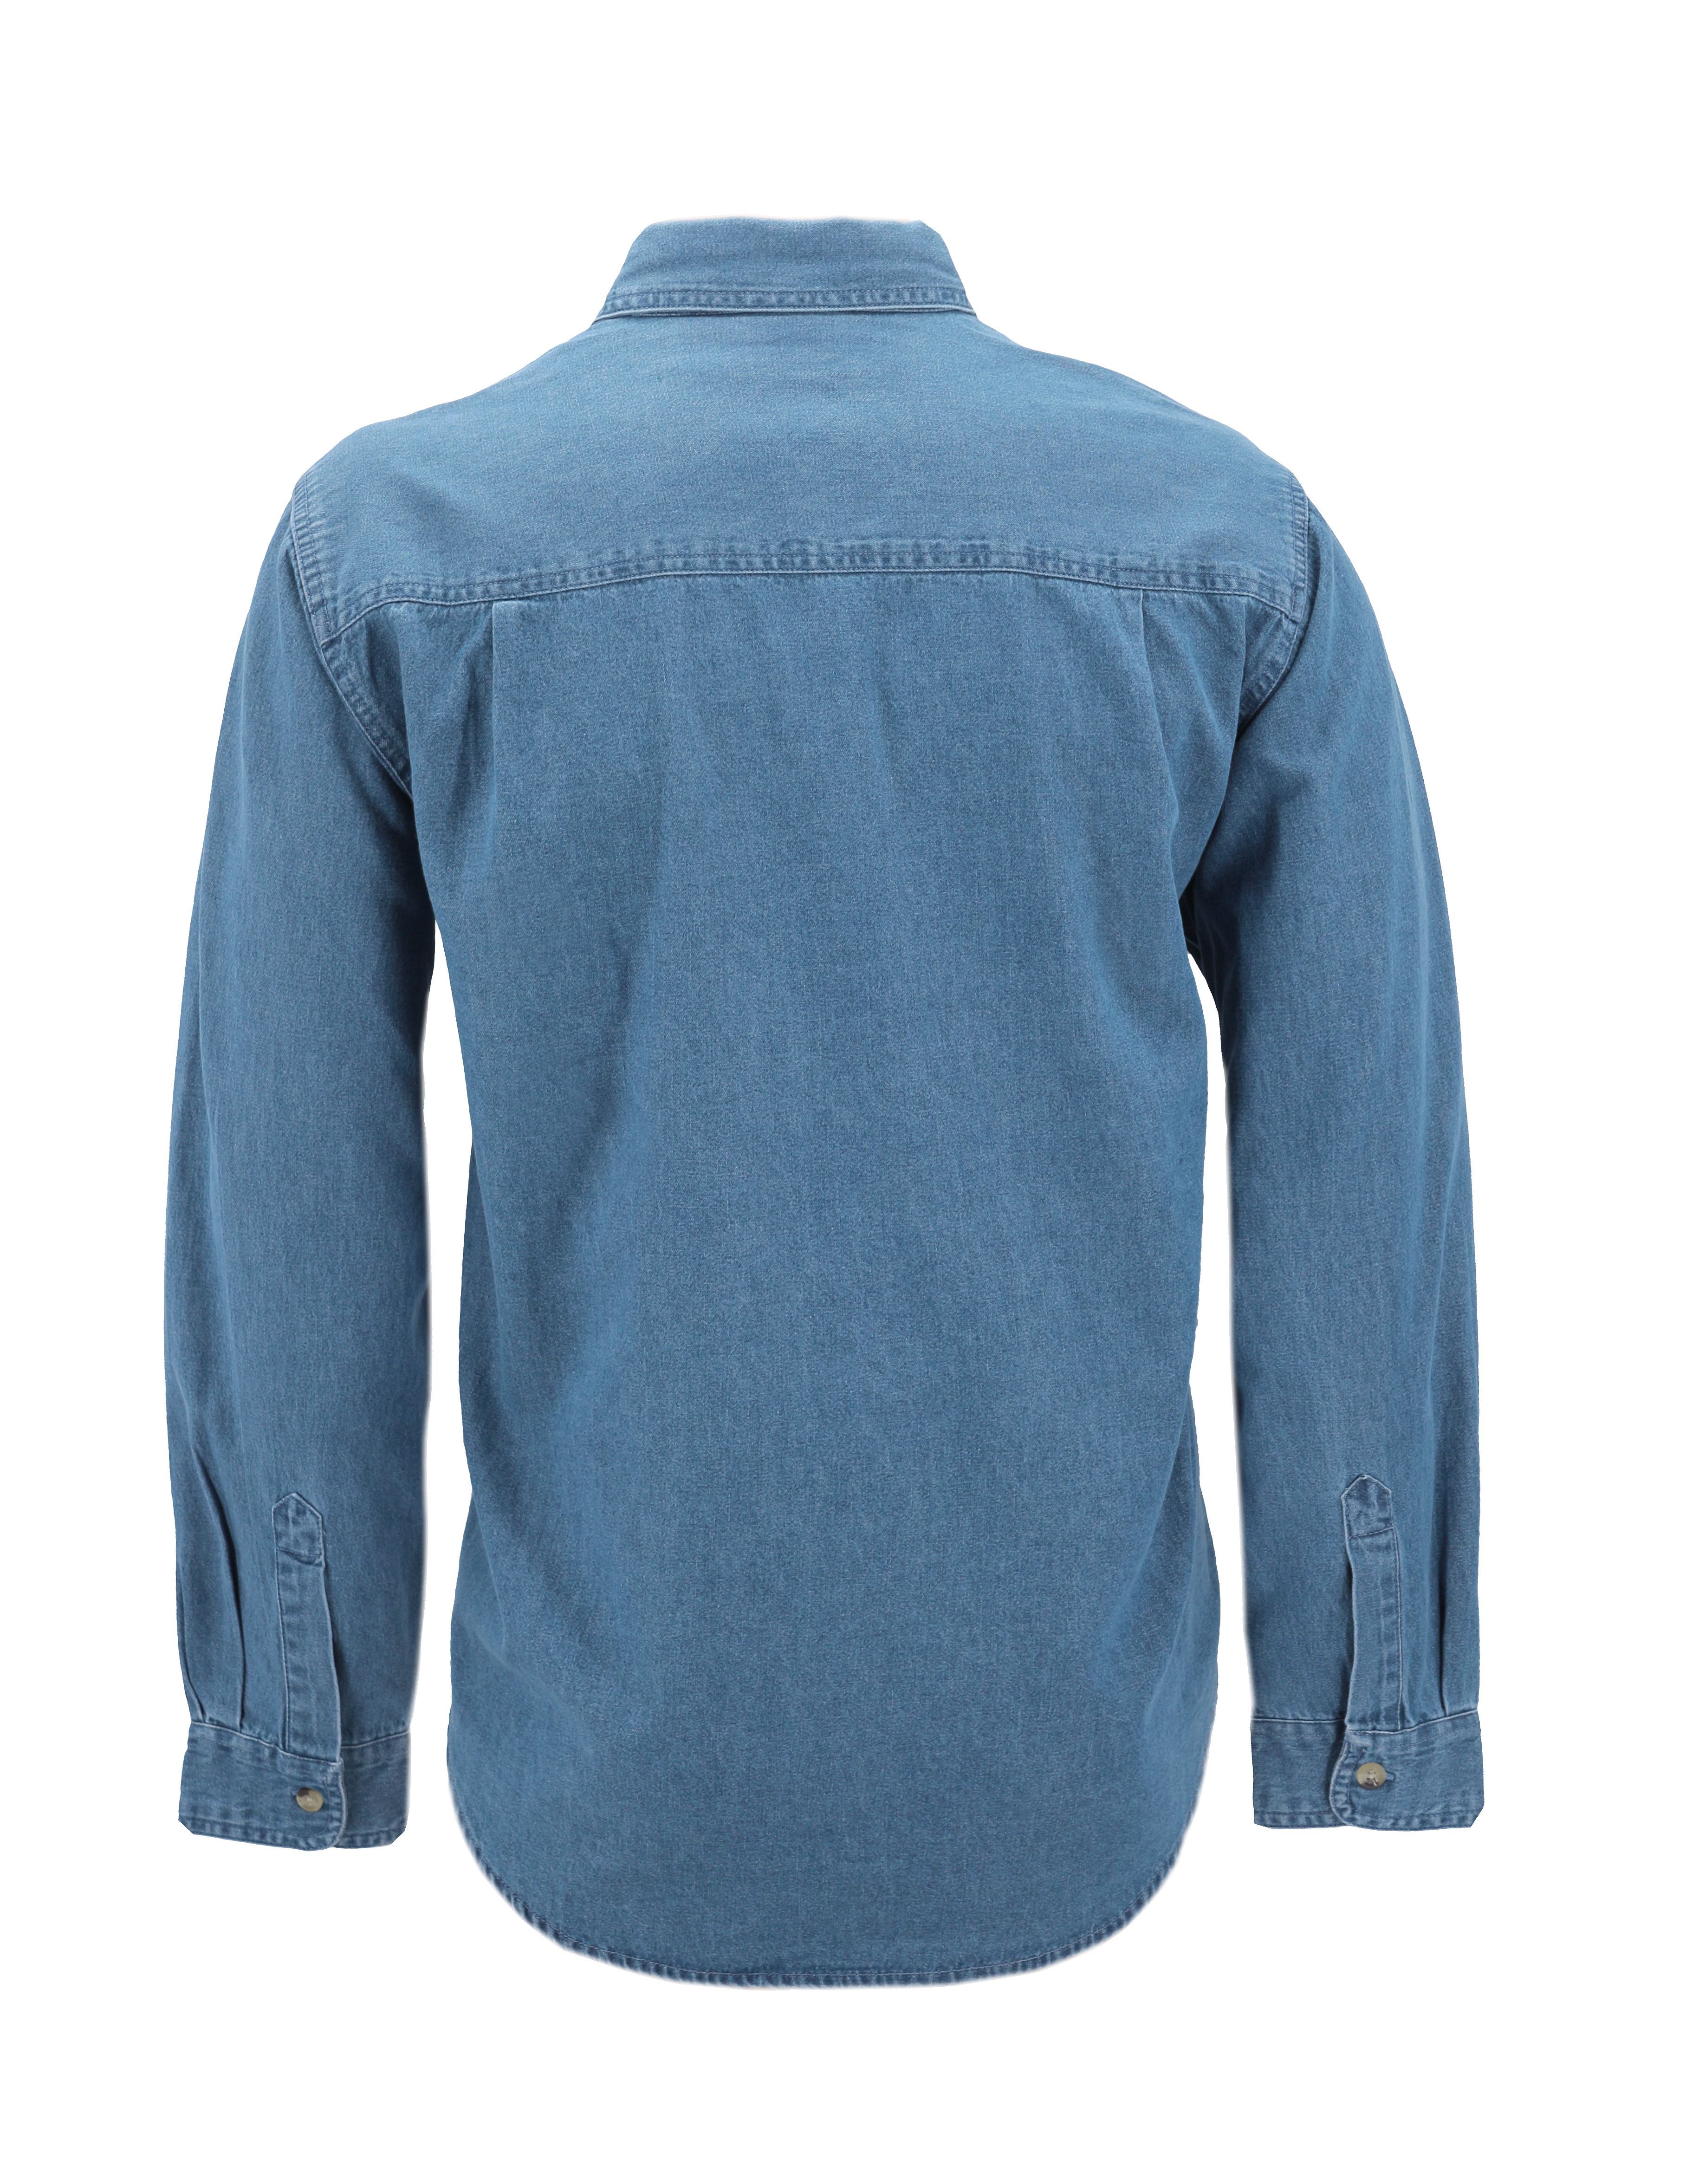 Men-039-s-Cotton-Denim-Long-Sleeve-Button-Up-Collared-Classic-Casual-Dress-Shirt thumbnail 6